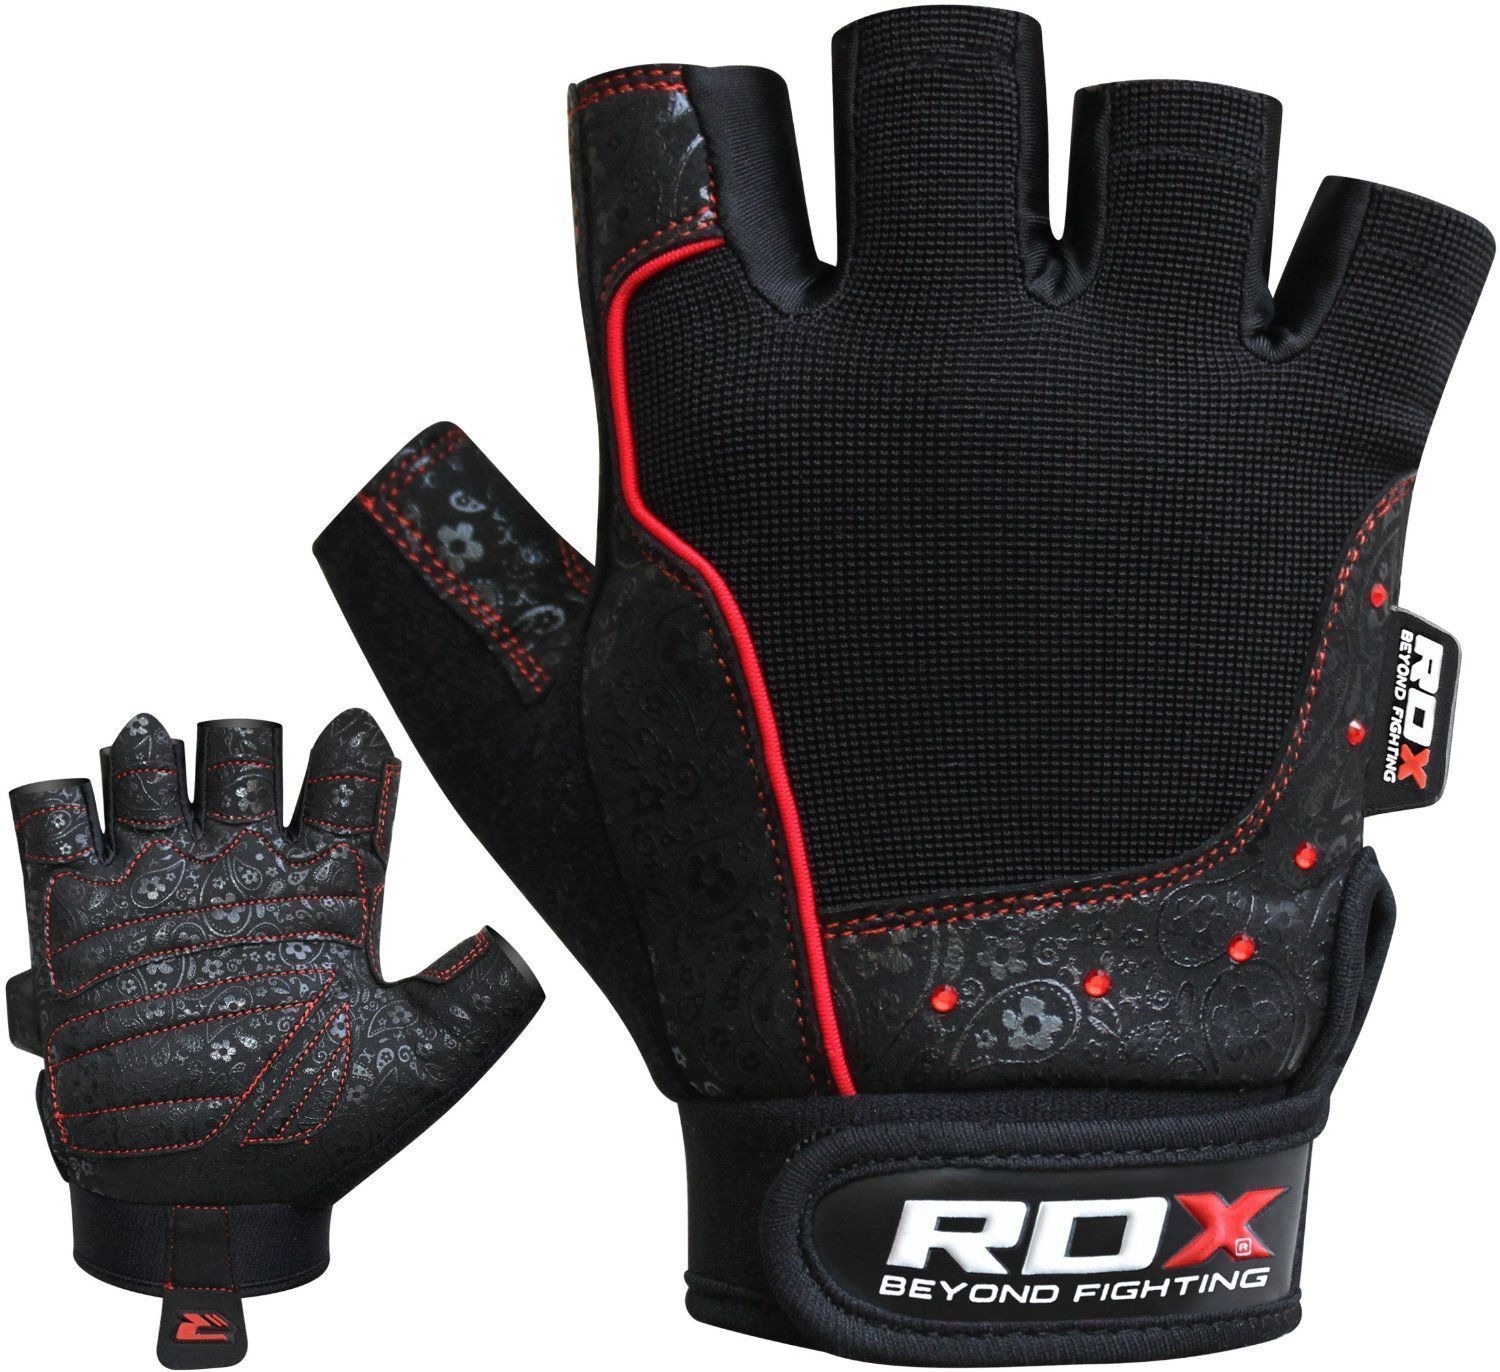 RDX Women Gym Weight Lifting Gloves Ladies Crossfit Training Bodybuilding Fitness Exercise by RDX